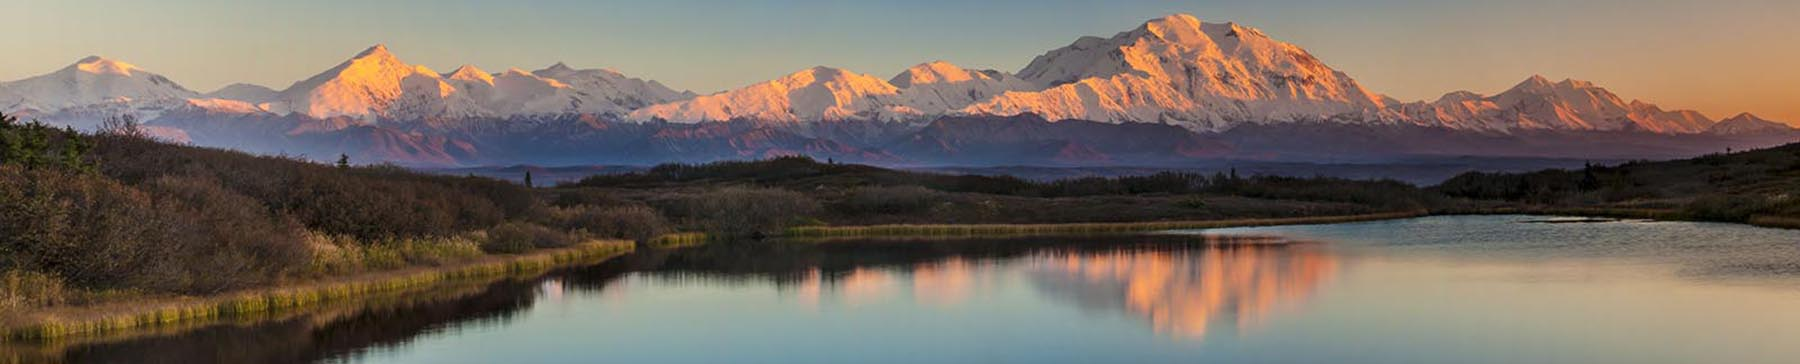 Alaska, Autumn, Denali, Denali National Park & Preserve, Mt. McKinley, evening, panoramic, stitched, sunset, photo